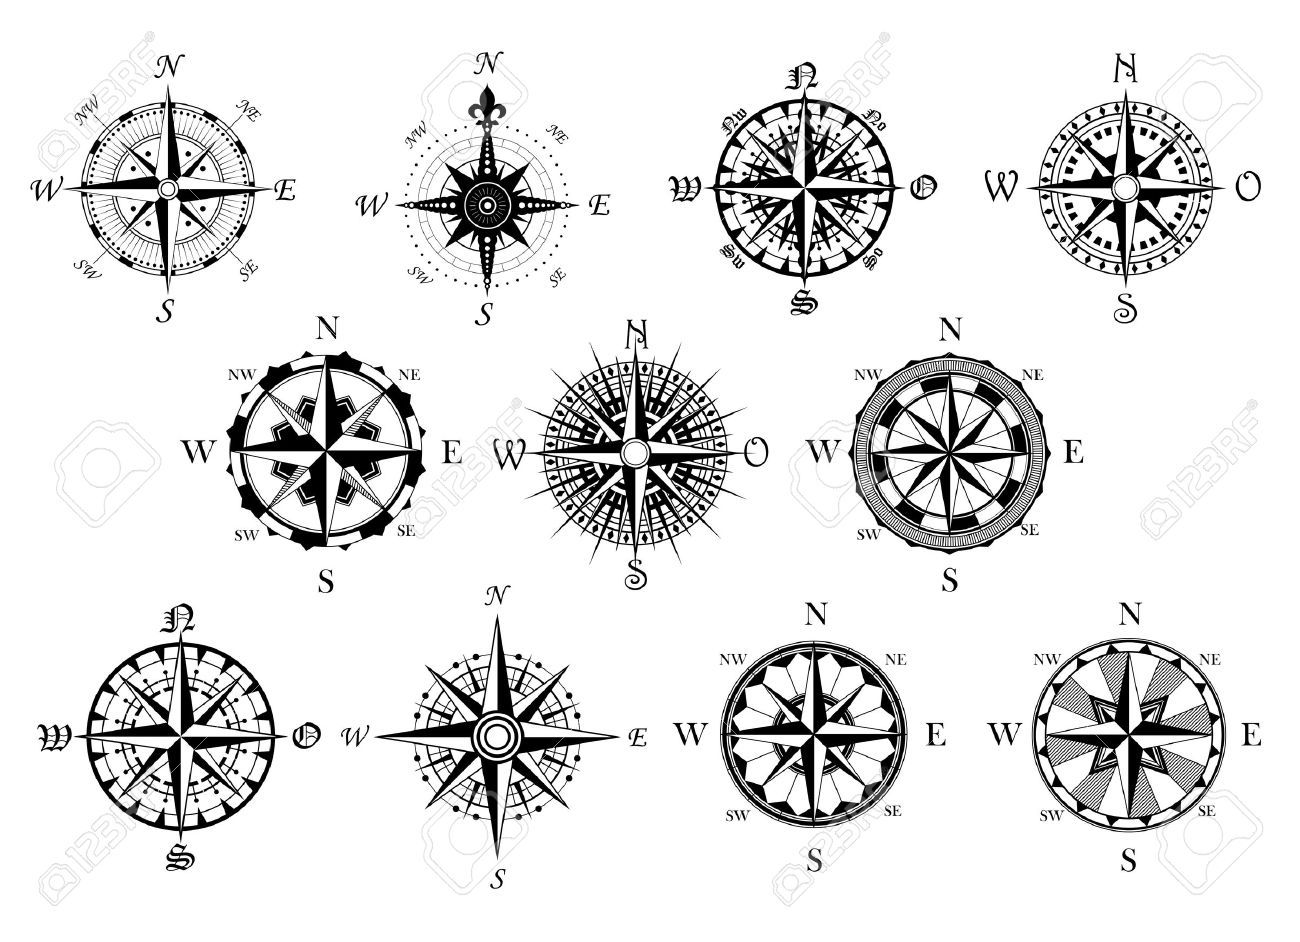 32712552-Vector-antique-compasses-with-ornate-dials-for-use-as-design--Stock-Photo.jpg 1.300×942 pixel